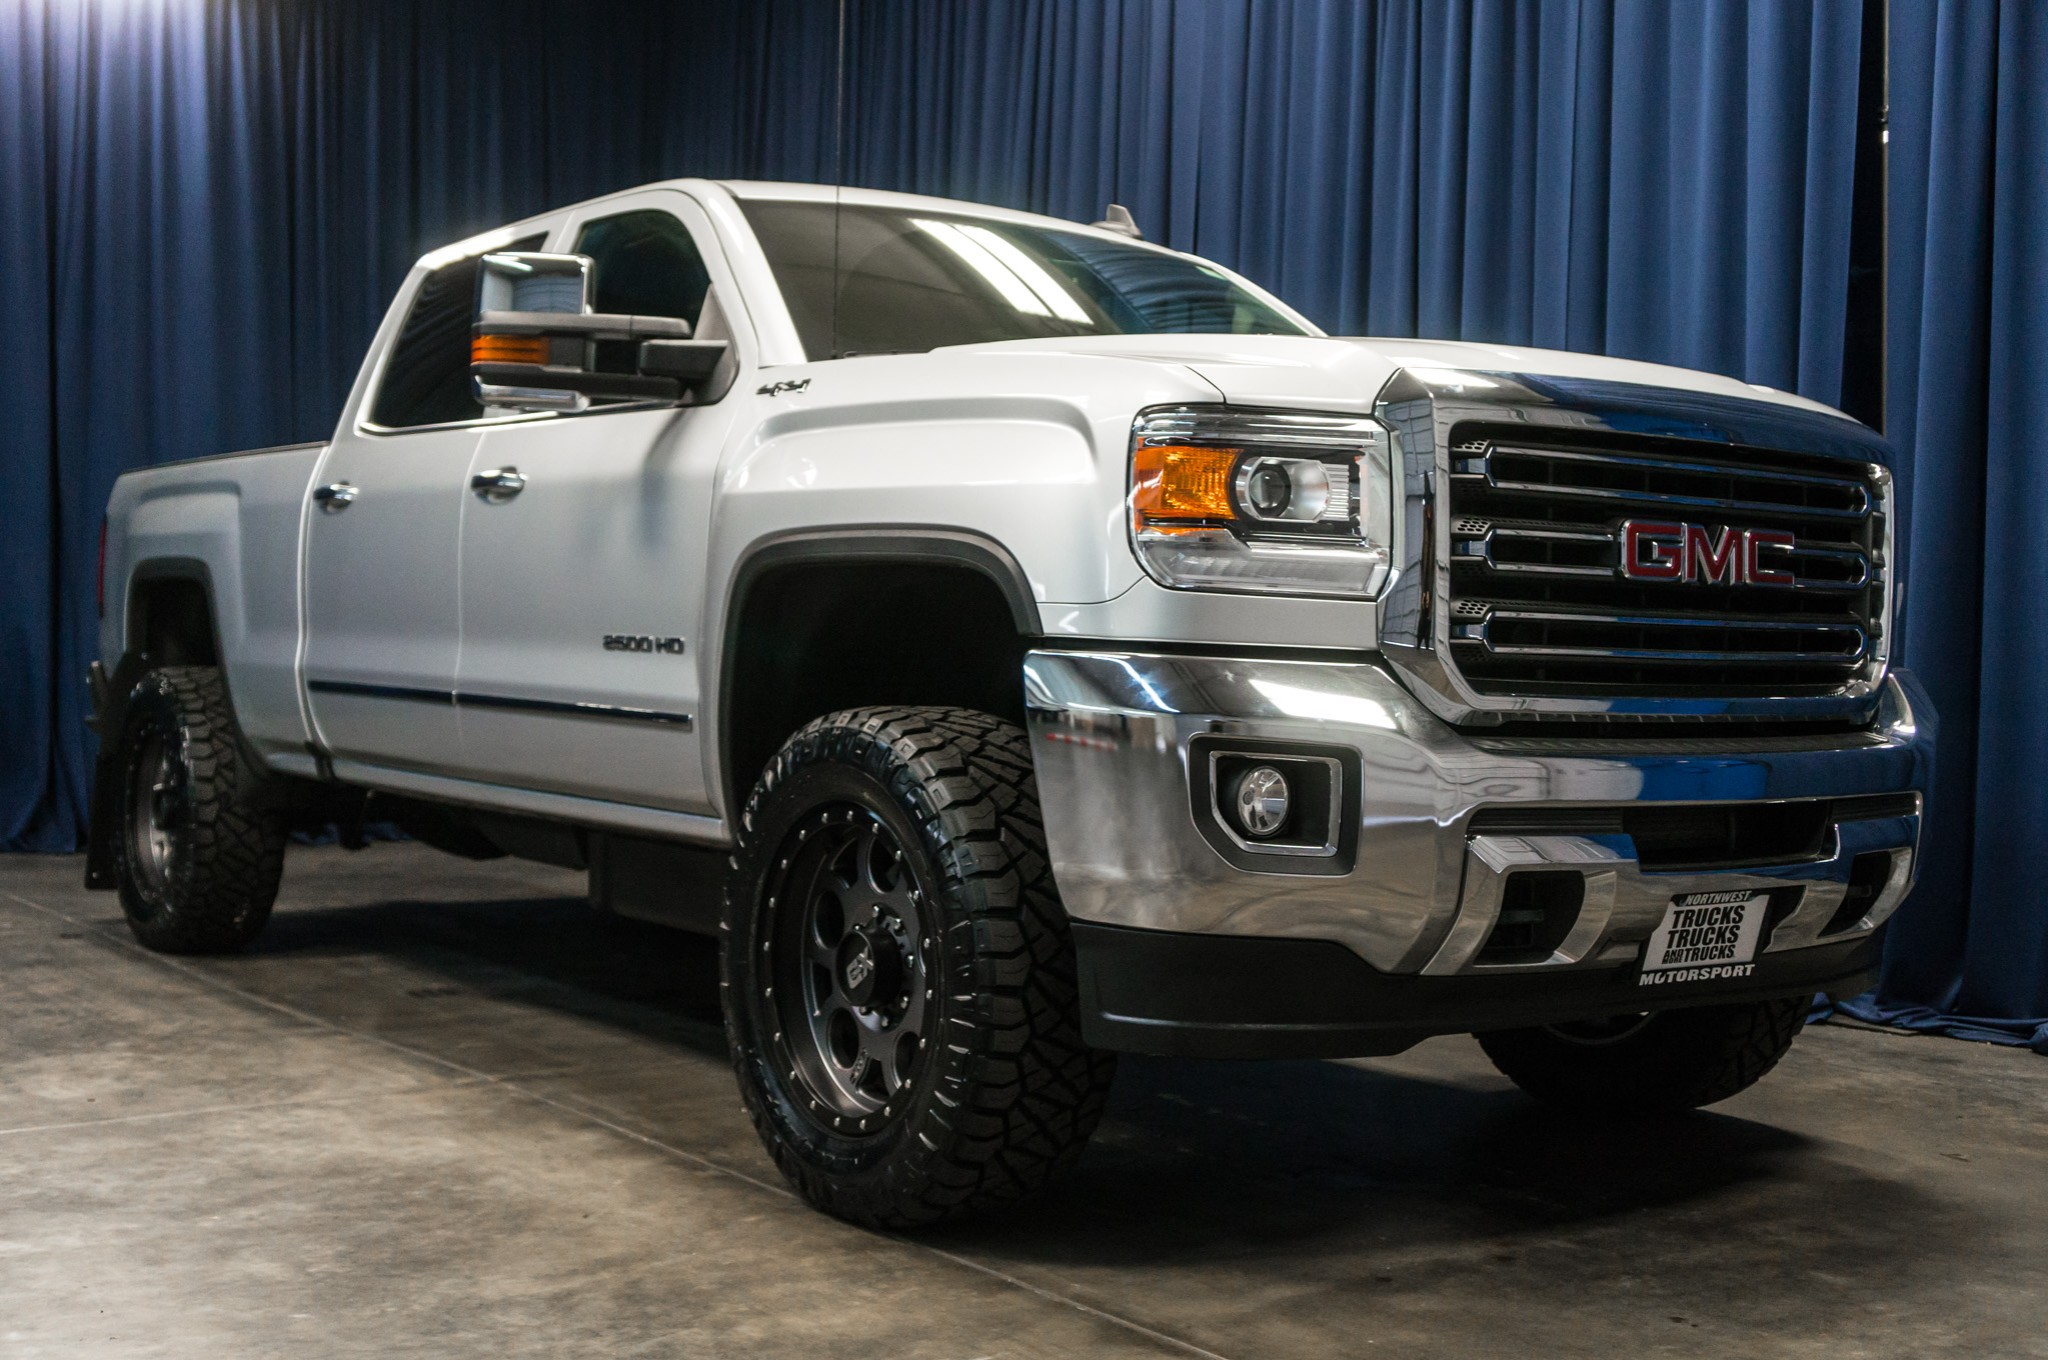 used lifted 2016 gmc sierra 2500 slt 4x4 diesel truck for sale 38275. Black Bedroom Furniture Sets. Home Design Ideas